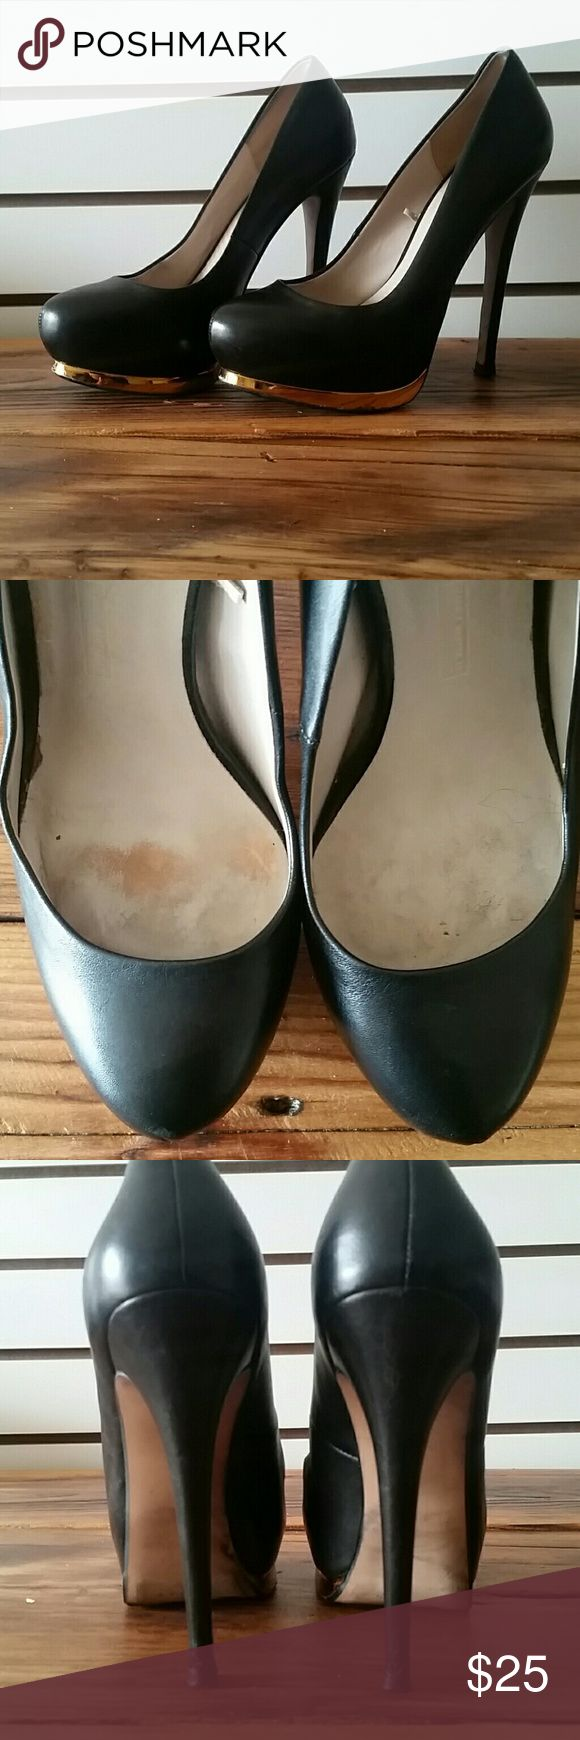 Zara Black and Gold Pump Worn, but still in great condition! Great for a fancy evening. Wear shown in pictures, as well as some very mild scratching on the front gold reflective part of the shoe. Share, like, and leave questions in the comments! Zara Shoes Heels